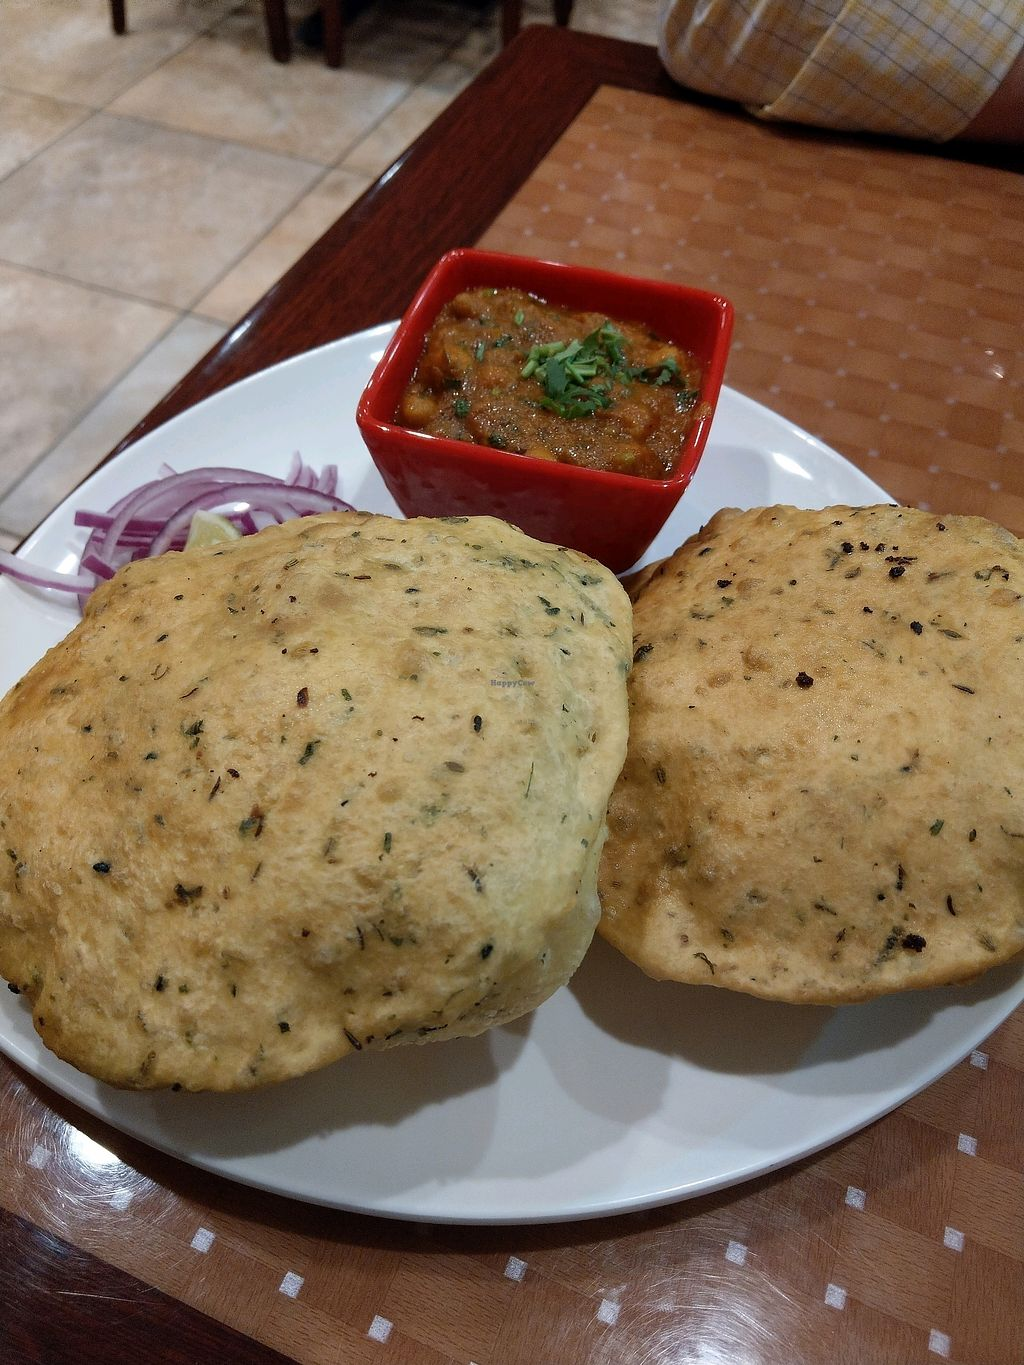 """Photo of Talk of the Town  by <a href=""""/members/profile/ashes2ashes87"""">ashes2ashes87</a> <br/>Chole Bhature <br/> February 5, 2018  - <a href='/contact/abuse/image/58856/355103'>Report</a>"""